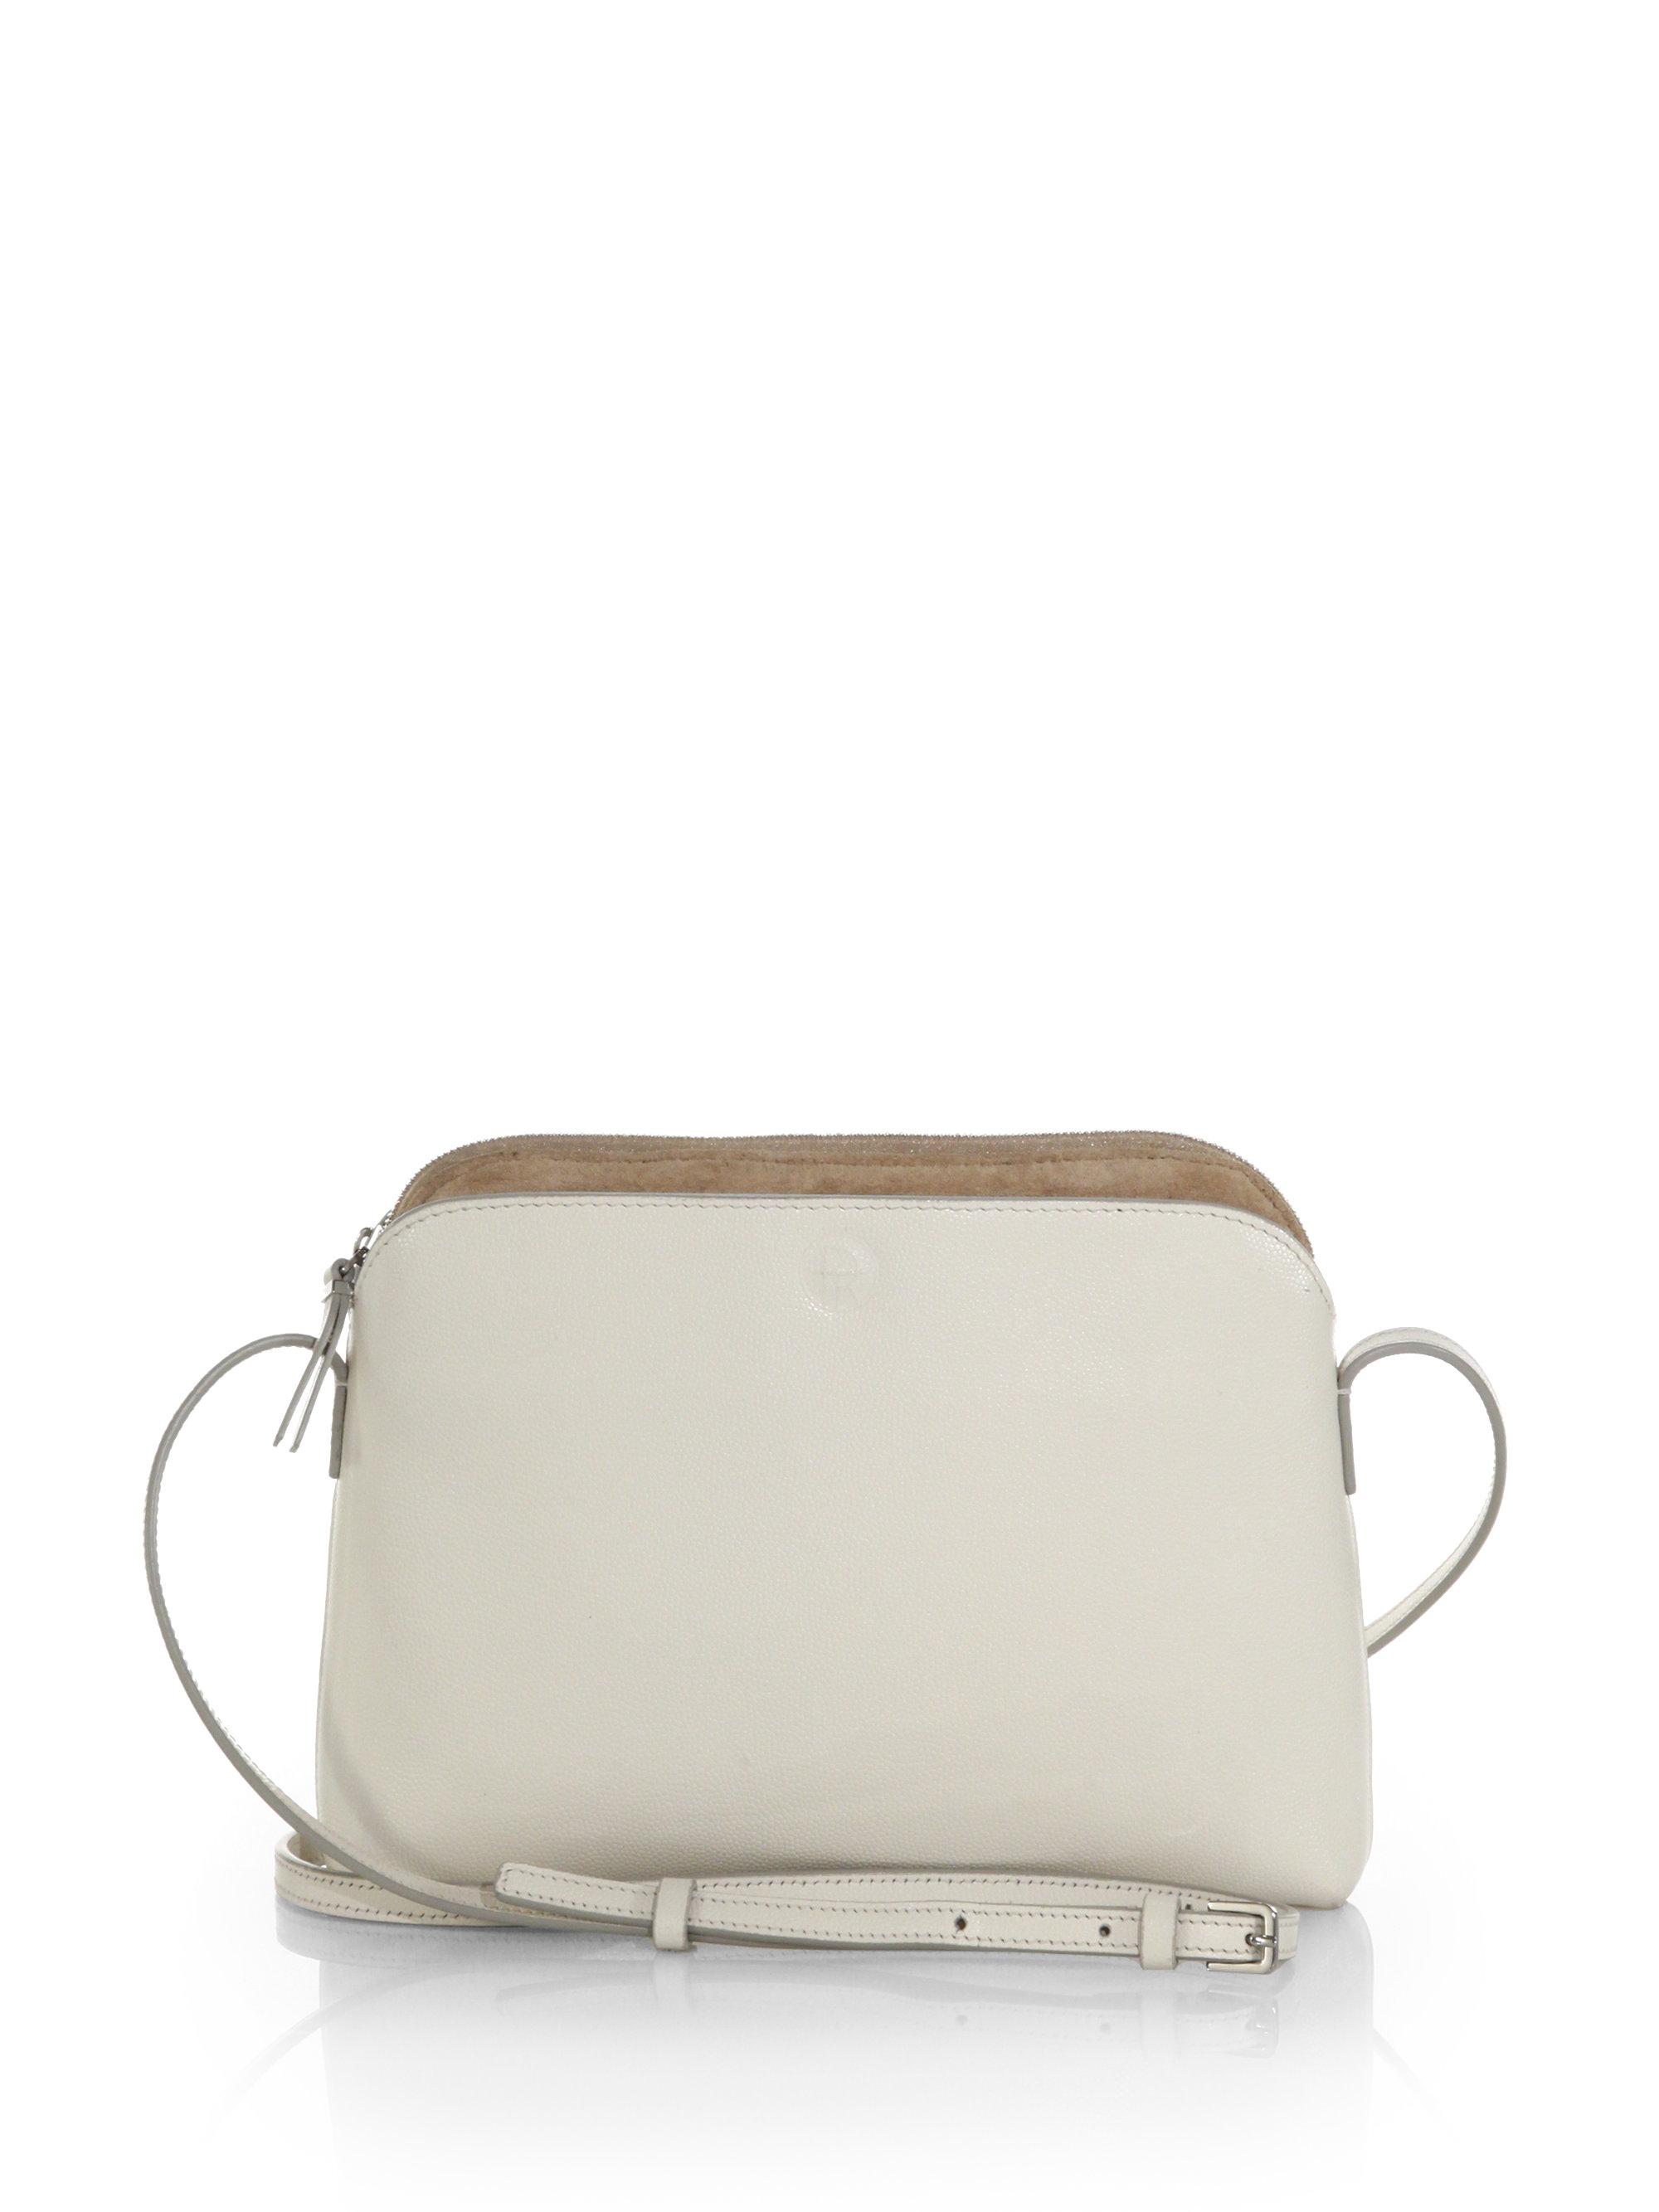 72ccb312e The Row Multi-pouch Crossbody Bag in White - Lyst